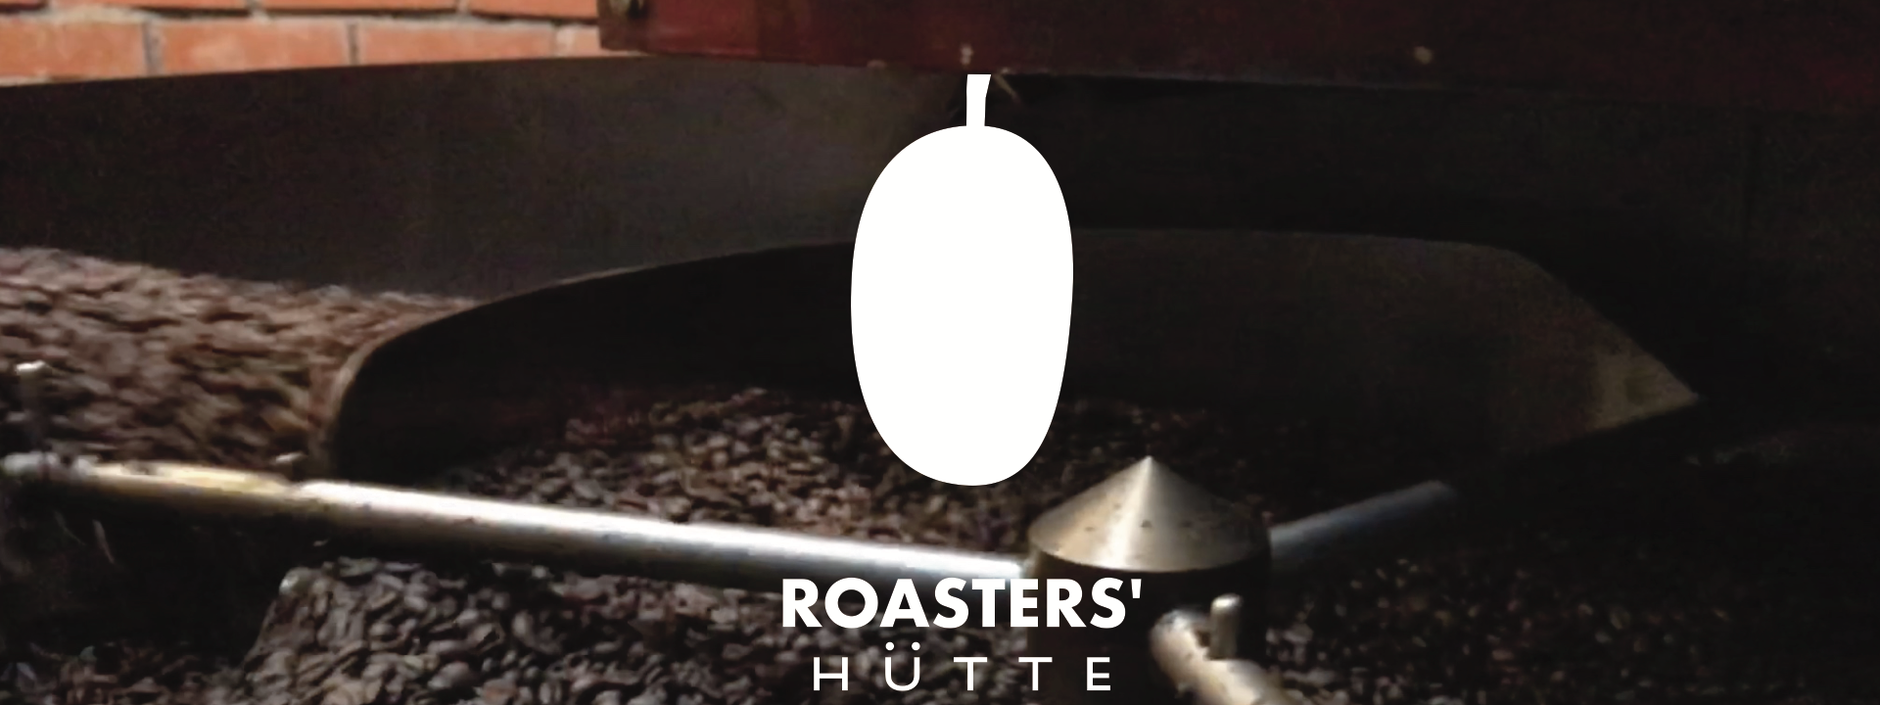 ROASTERS HUTTE   (ロースターズ ヒュッテ)